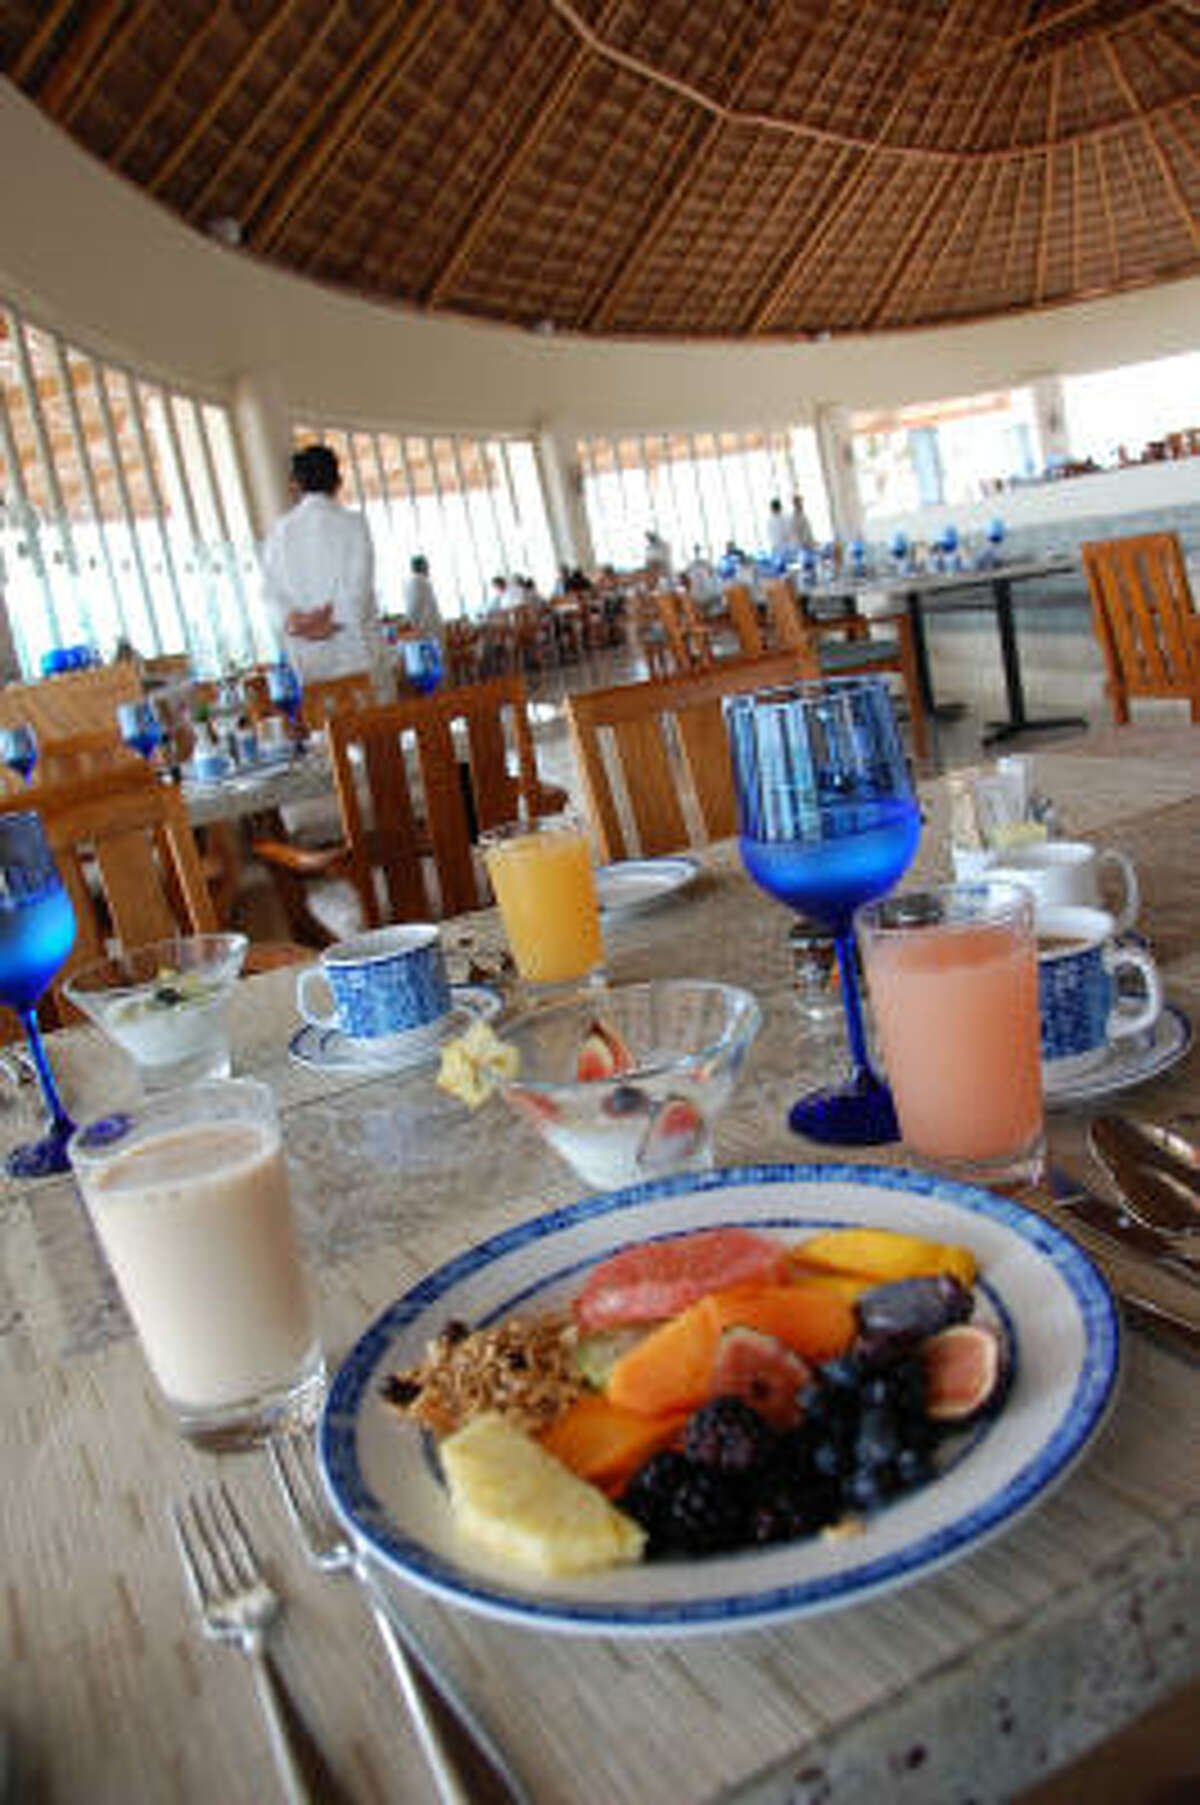 Tropical fruits abound at the breakfast buffet at Grand Velas' Azul restaurant.